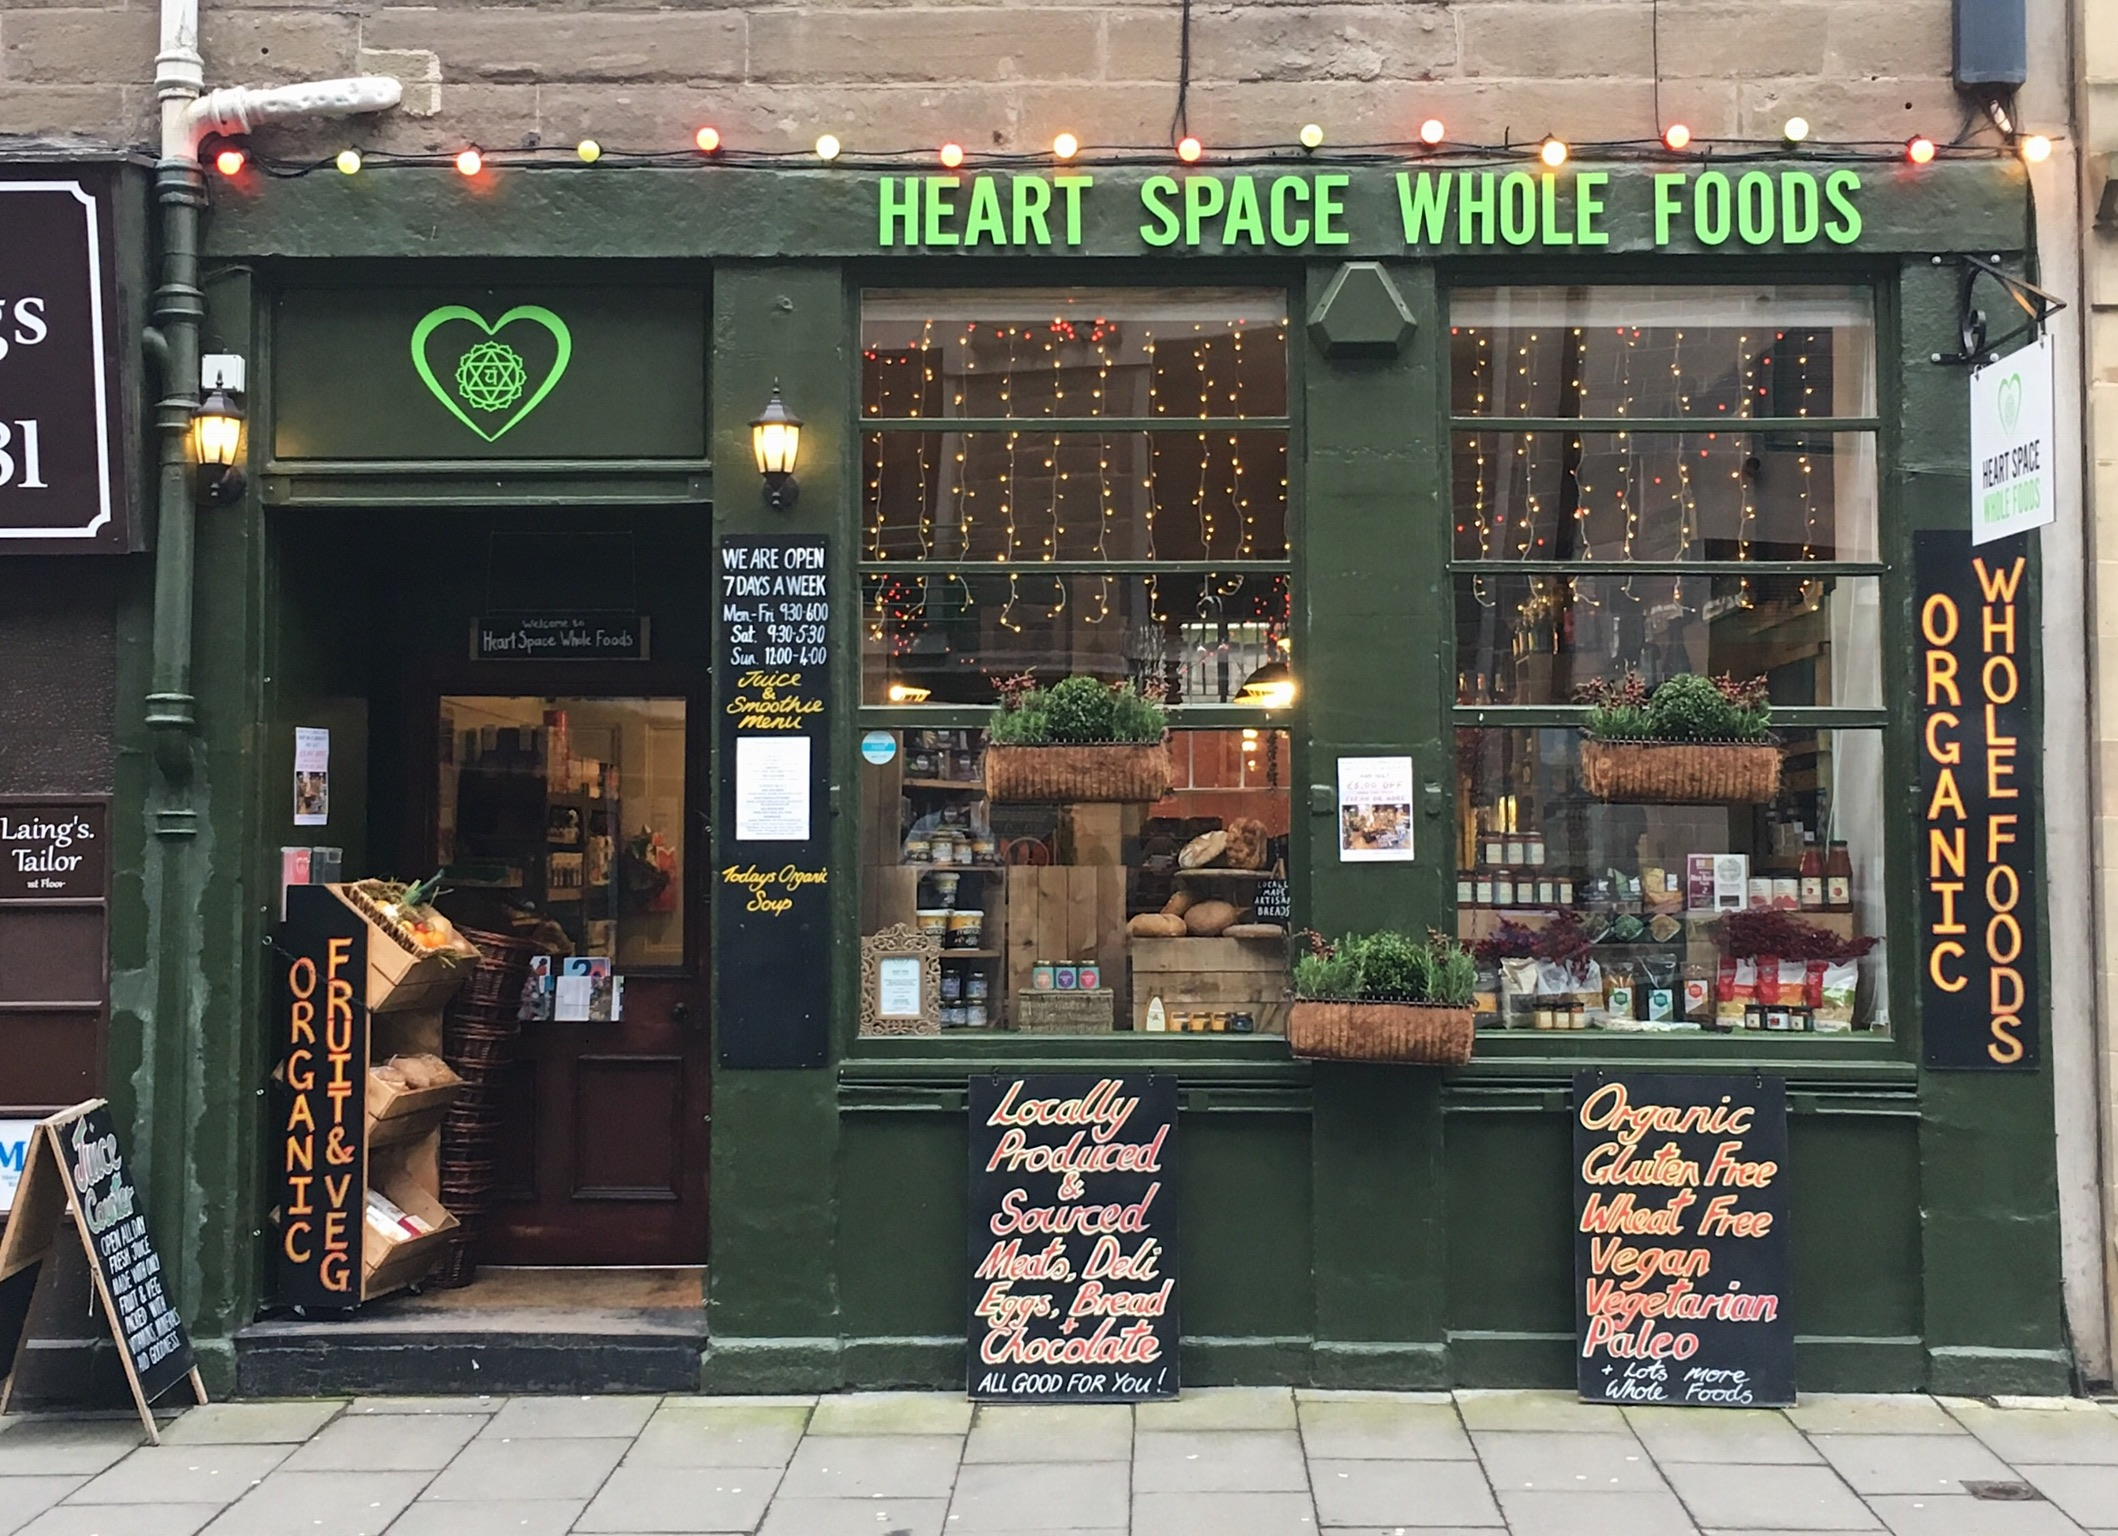 Heart Space Wholefoods - Chris Hunt works as HS Wholefoods Marketing & Comms consultant, working strategically on internal and external strategies for the owners of this exciting and much loved retail brand.